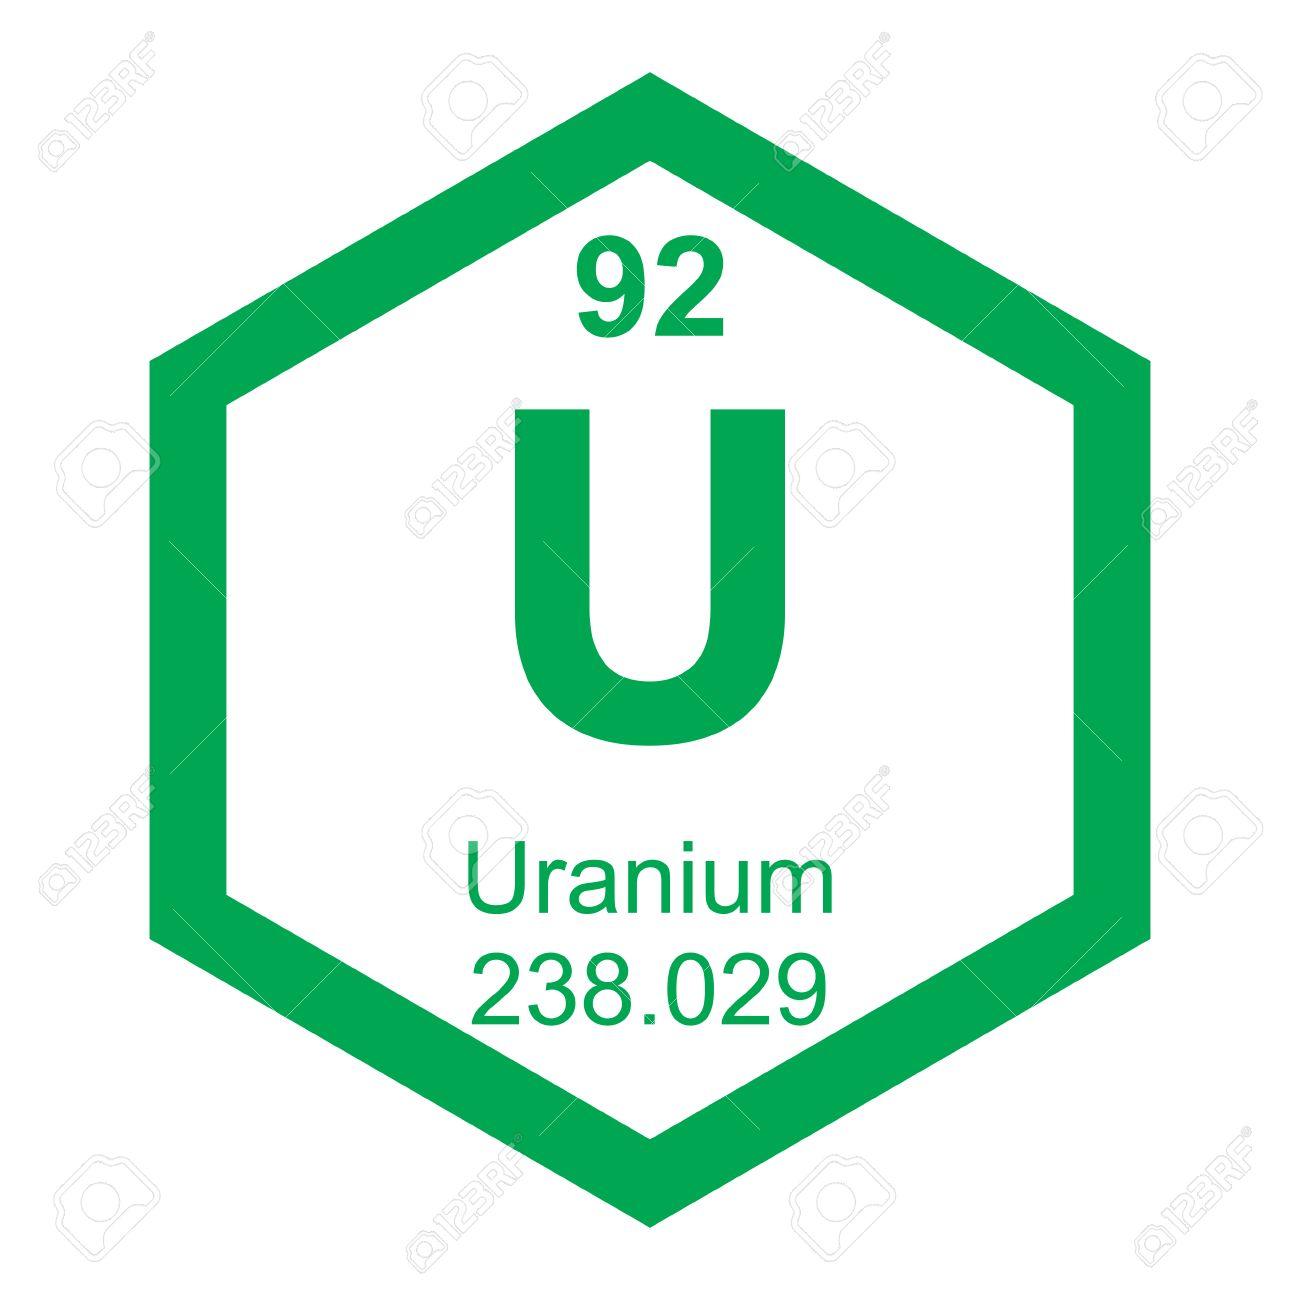 Periodic table uranium royalty free cliparts vectors and stock periodic table uranium stock vector 41243820 urtaz Image collections